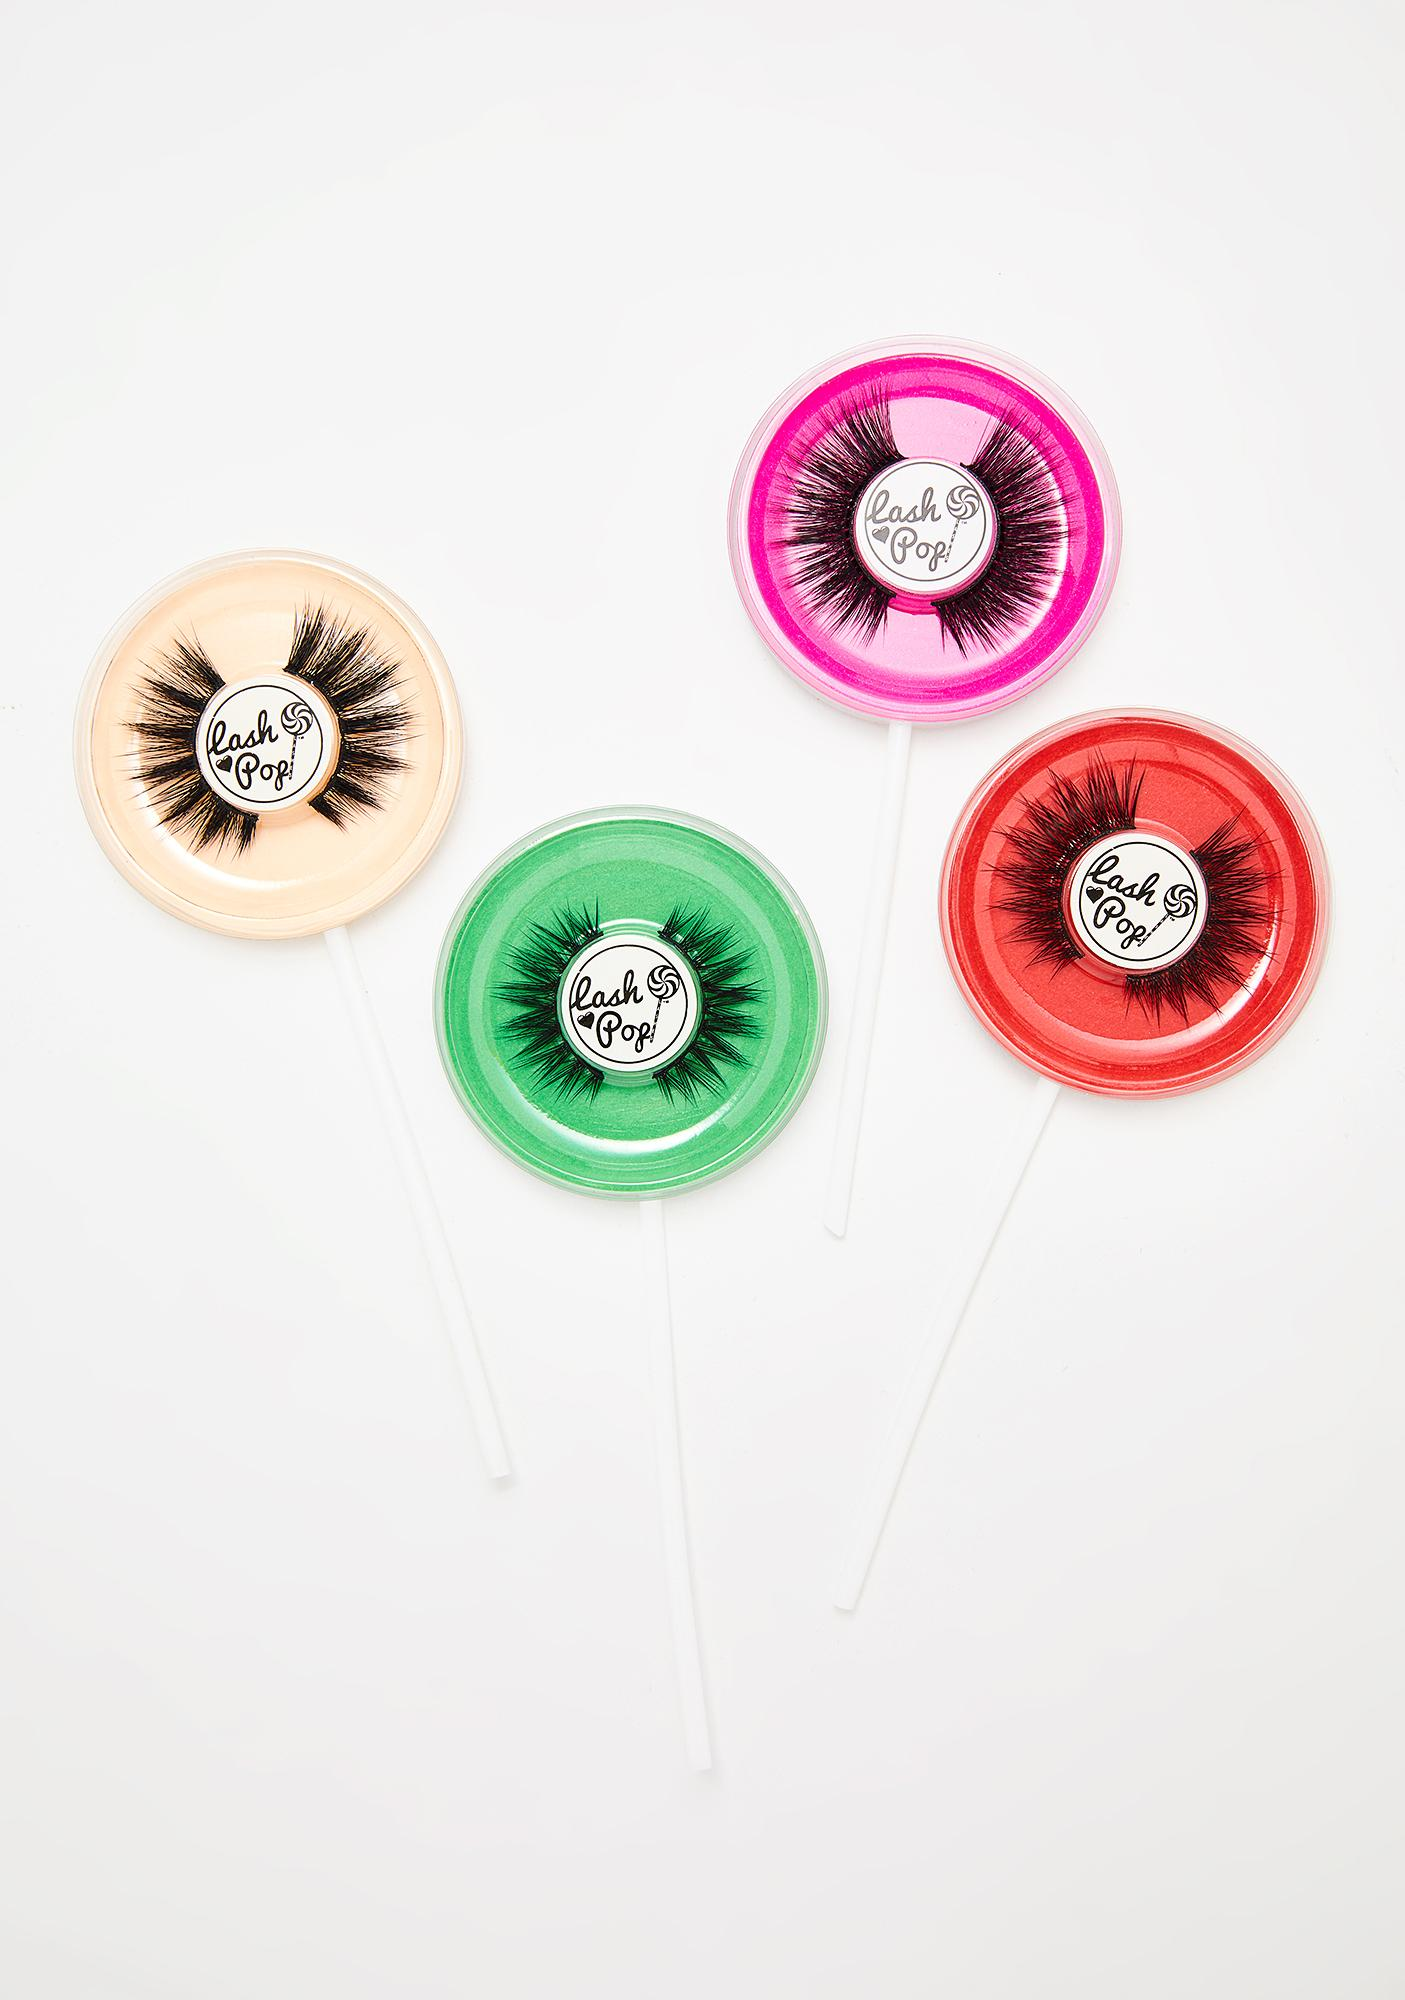 Lash Pop Send Nudes Lashes